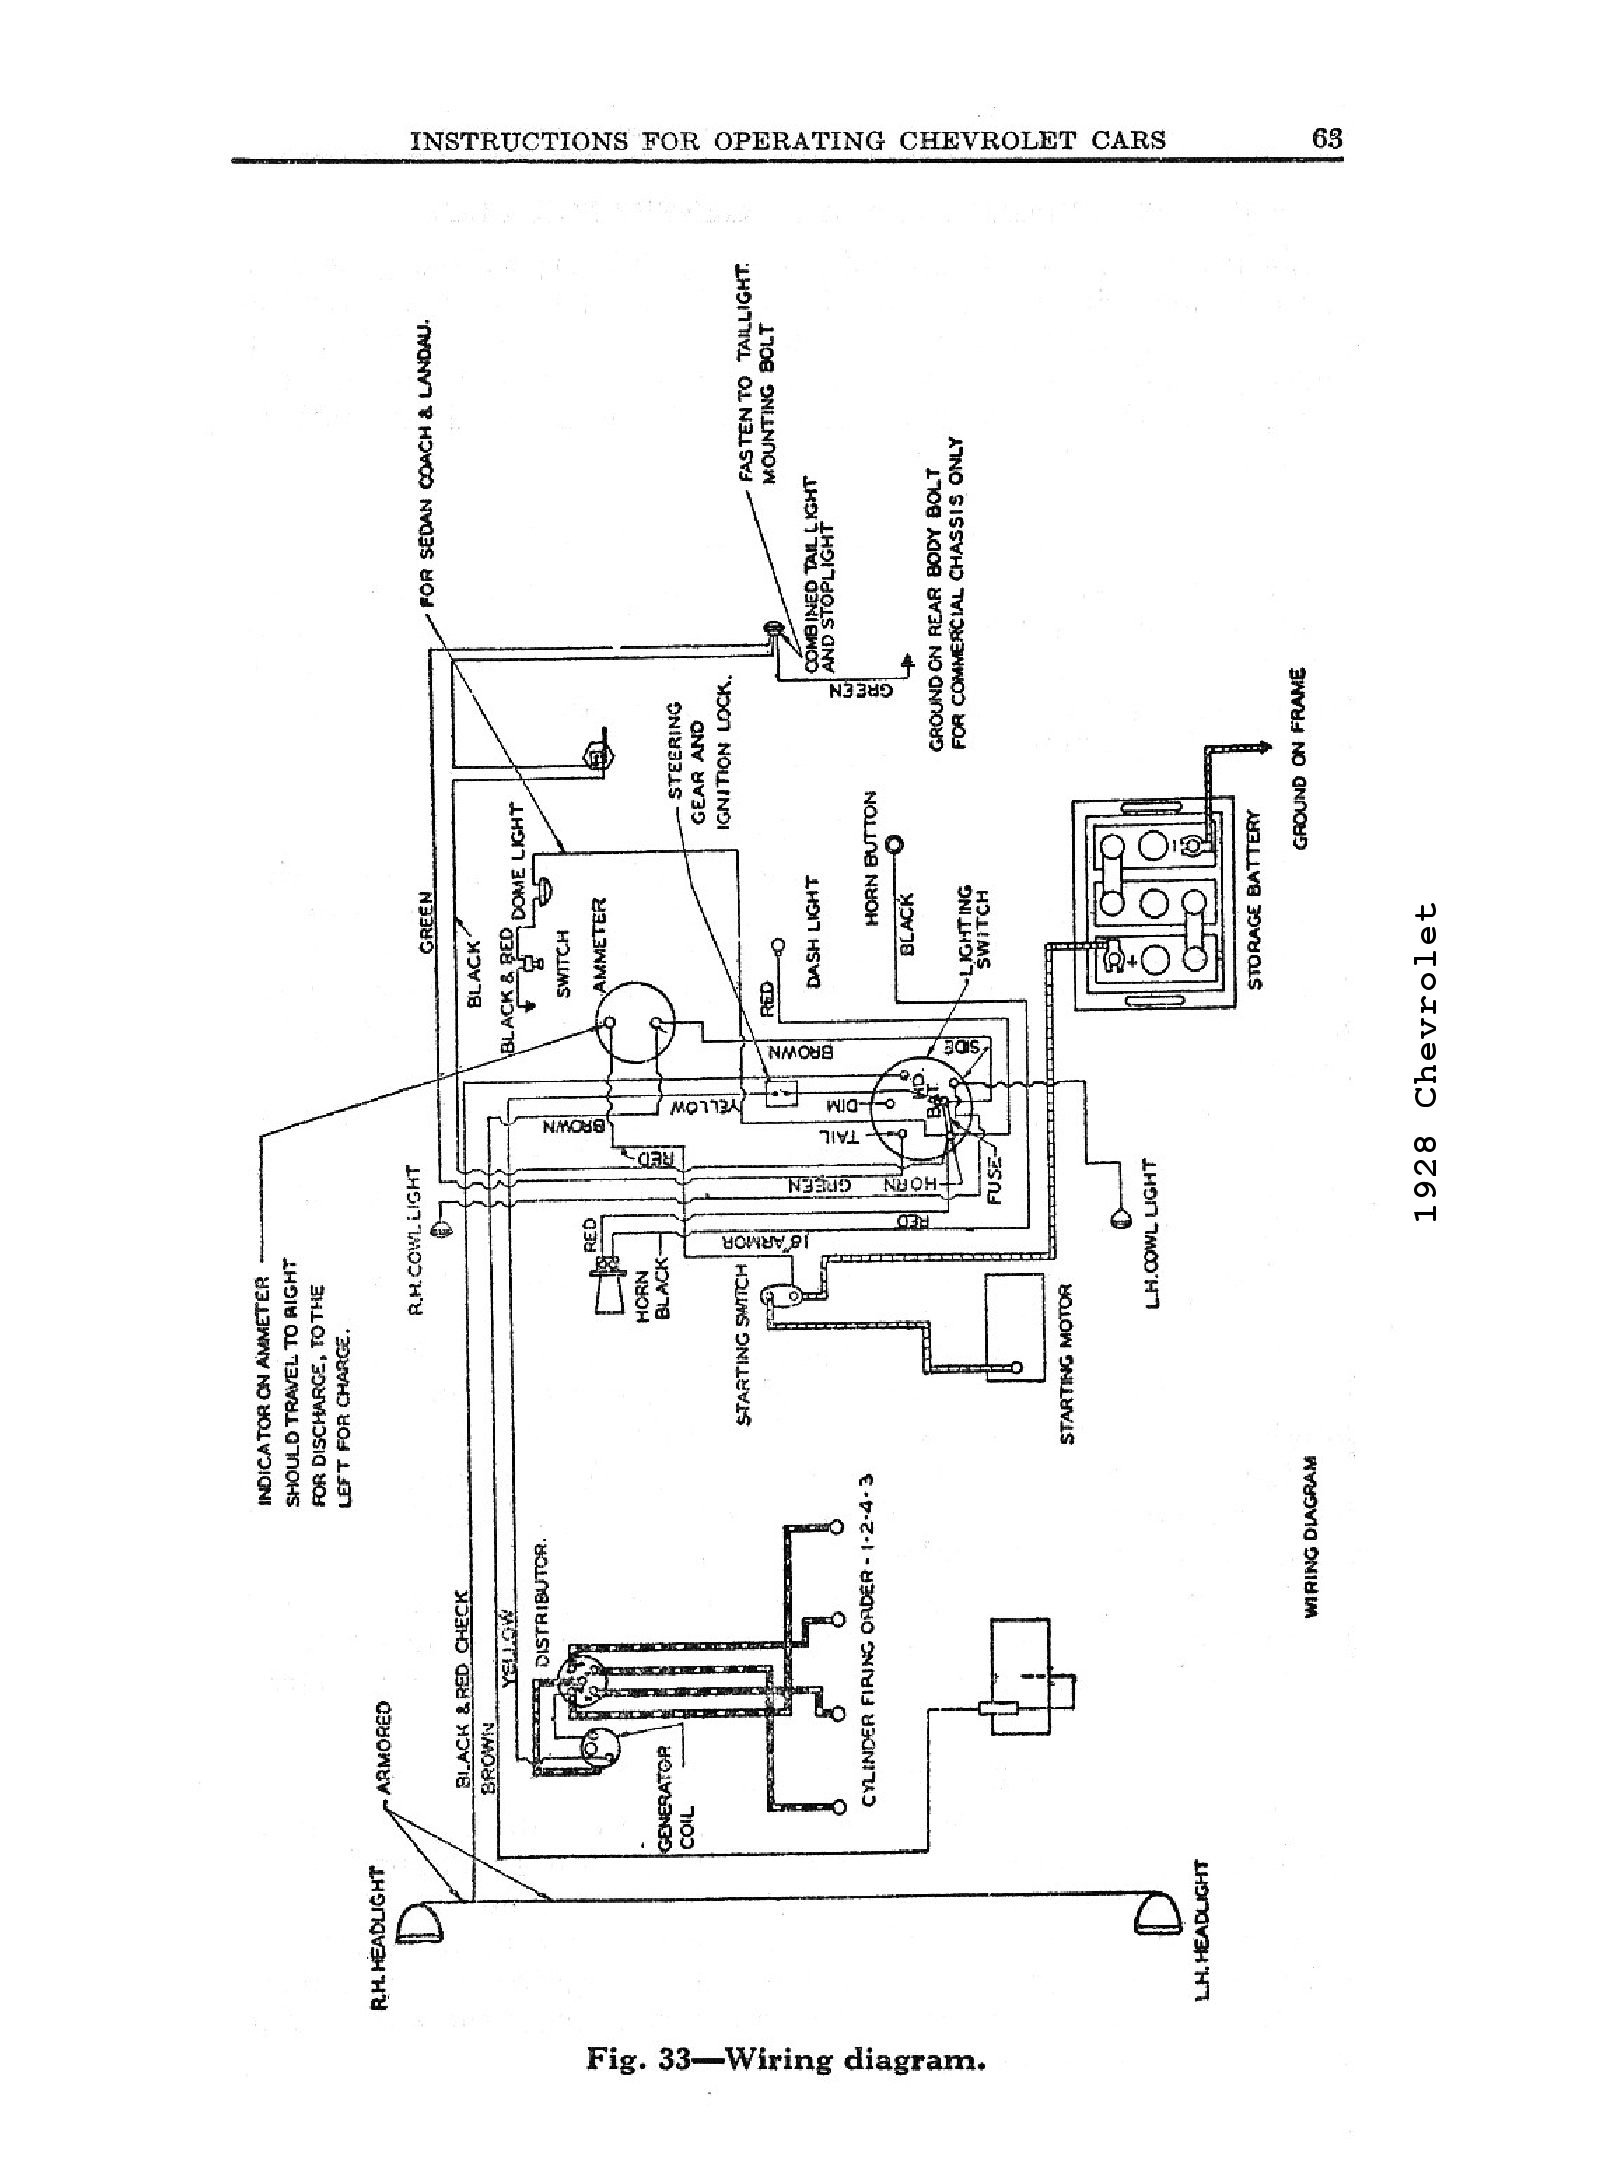 chevy wiring diagrams Mercruiser Coil Wiring Diagram 1928, 1928 wiring diagrams � 1928 general wiring